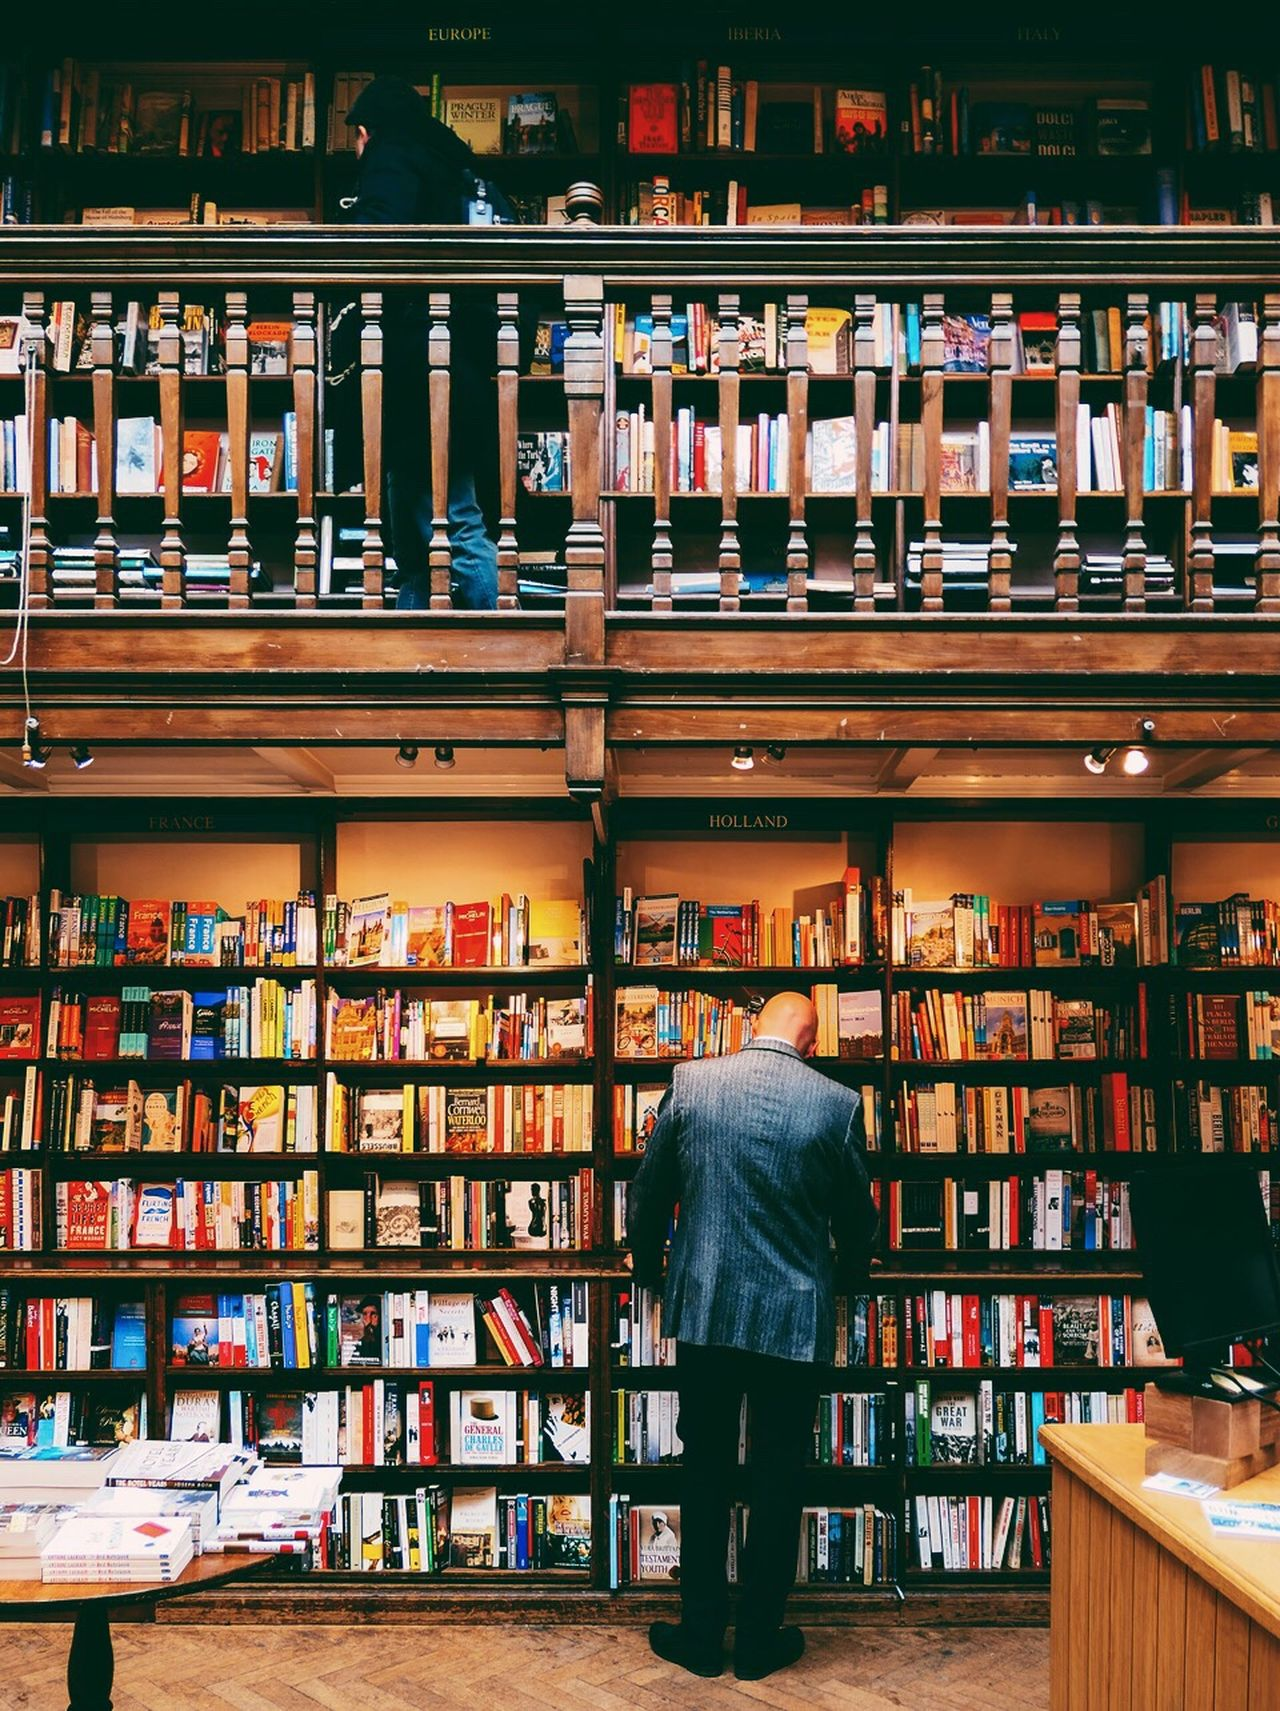 EyeEm LOST IN London Book Store Shelf Bookshelf Retail  Store Choice Indoors  Daunt Books, London Book Business Finance And Industry Only Men Rear View Small Business Library Bookstore Adults Only Men Business Abundance Variation Adult l